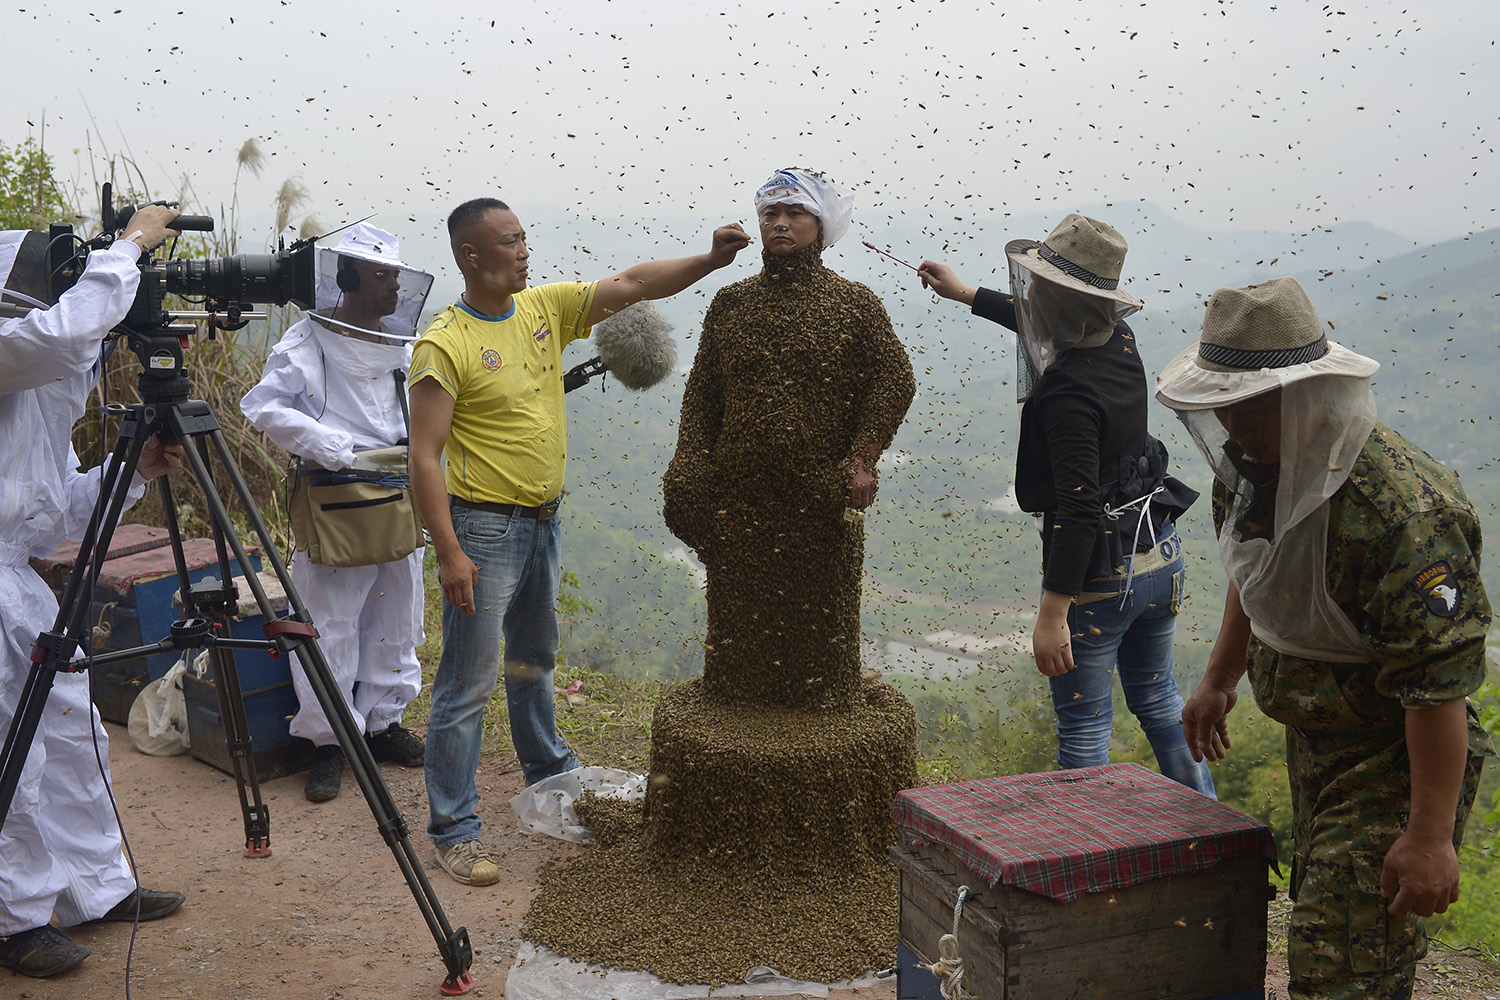 April 9, 2014. Assistants use burning incense and cigarettes to drive away bees from the face of She Ping, a 34-year-old beekeeper, during an attempt to cover his body with bees, in Chongqing municipality, China.